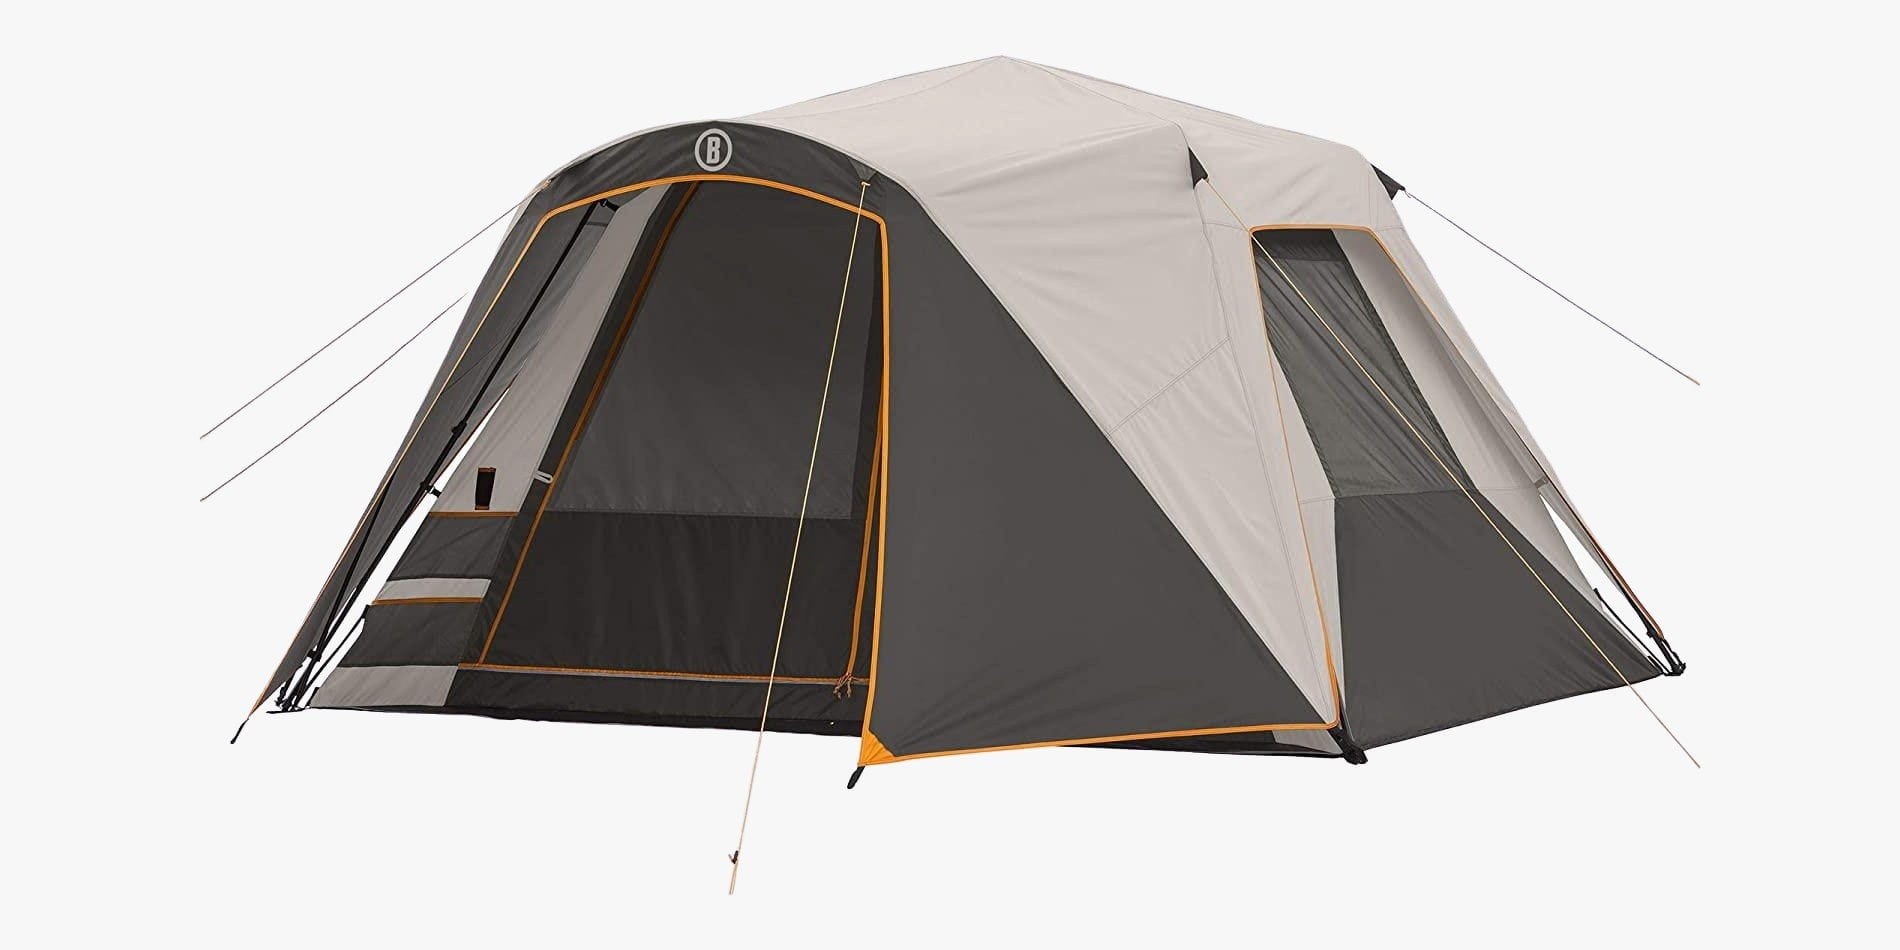 Bushnell Shield tent with AC slot